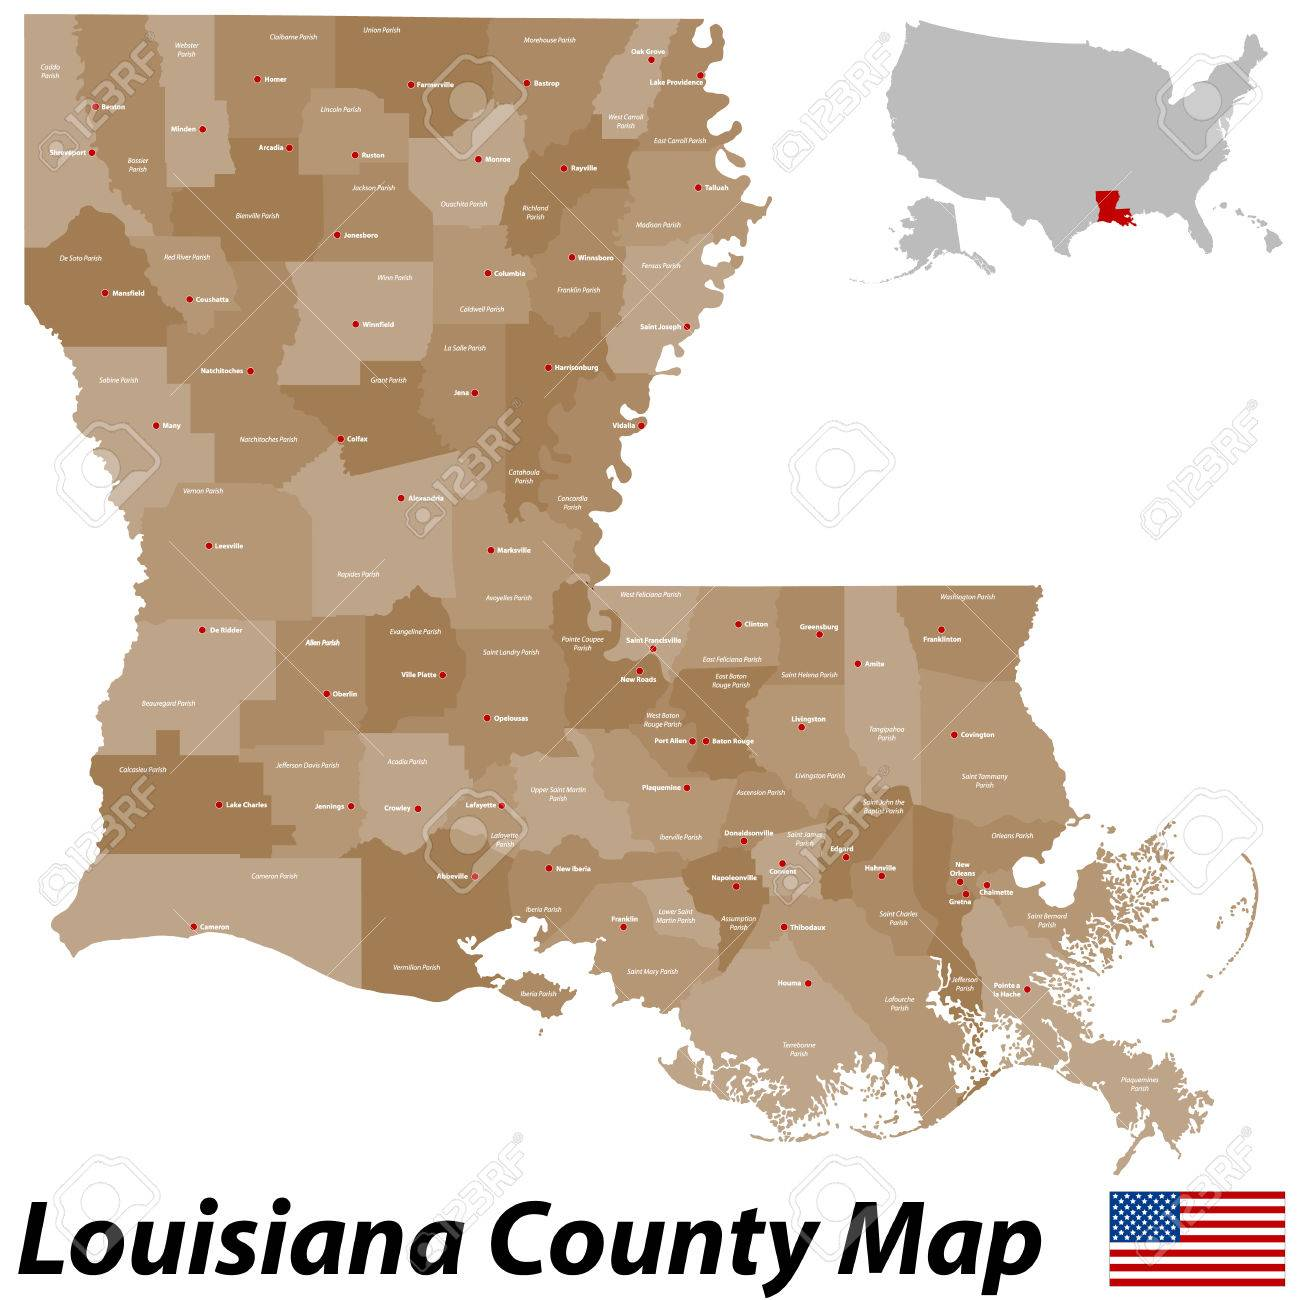 A Large Detailed Map Of The State Of Louisiana With All Parishes